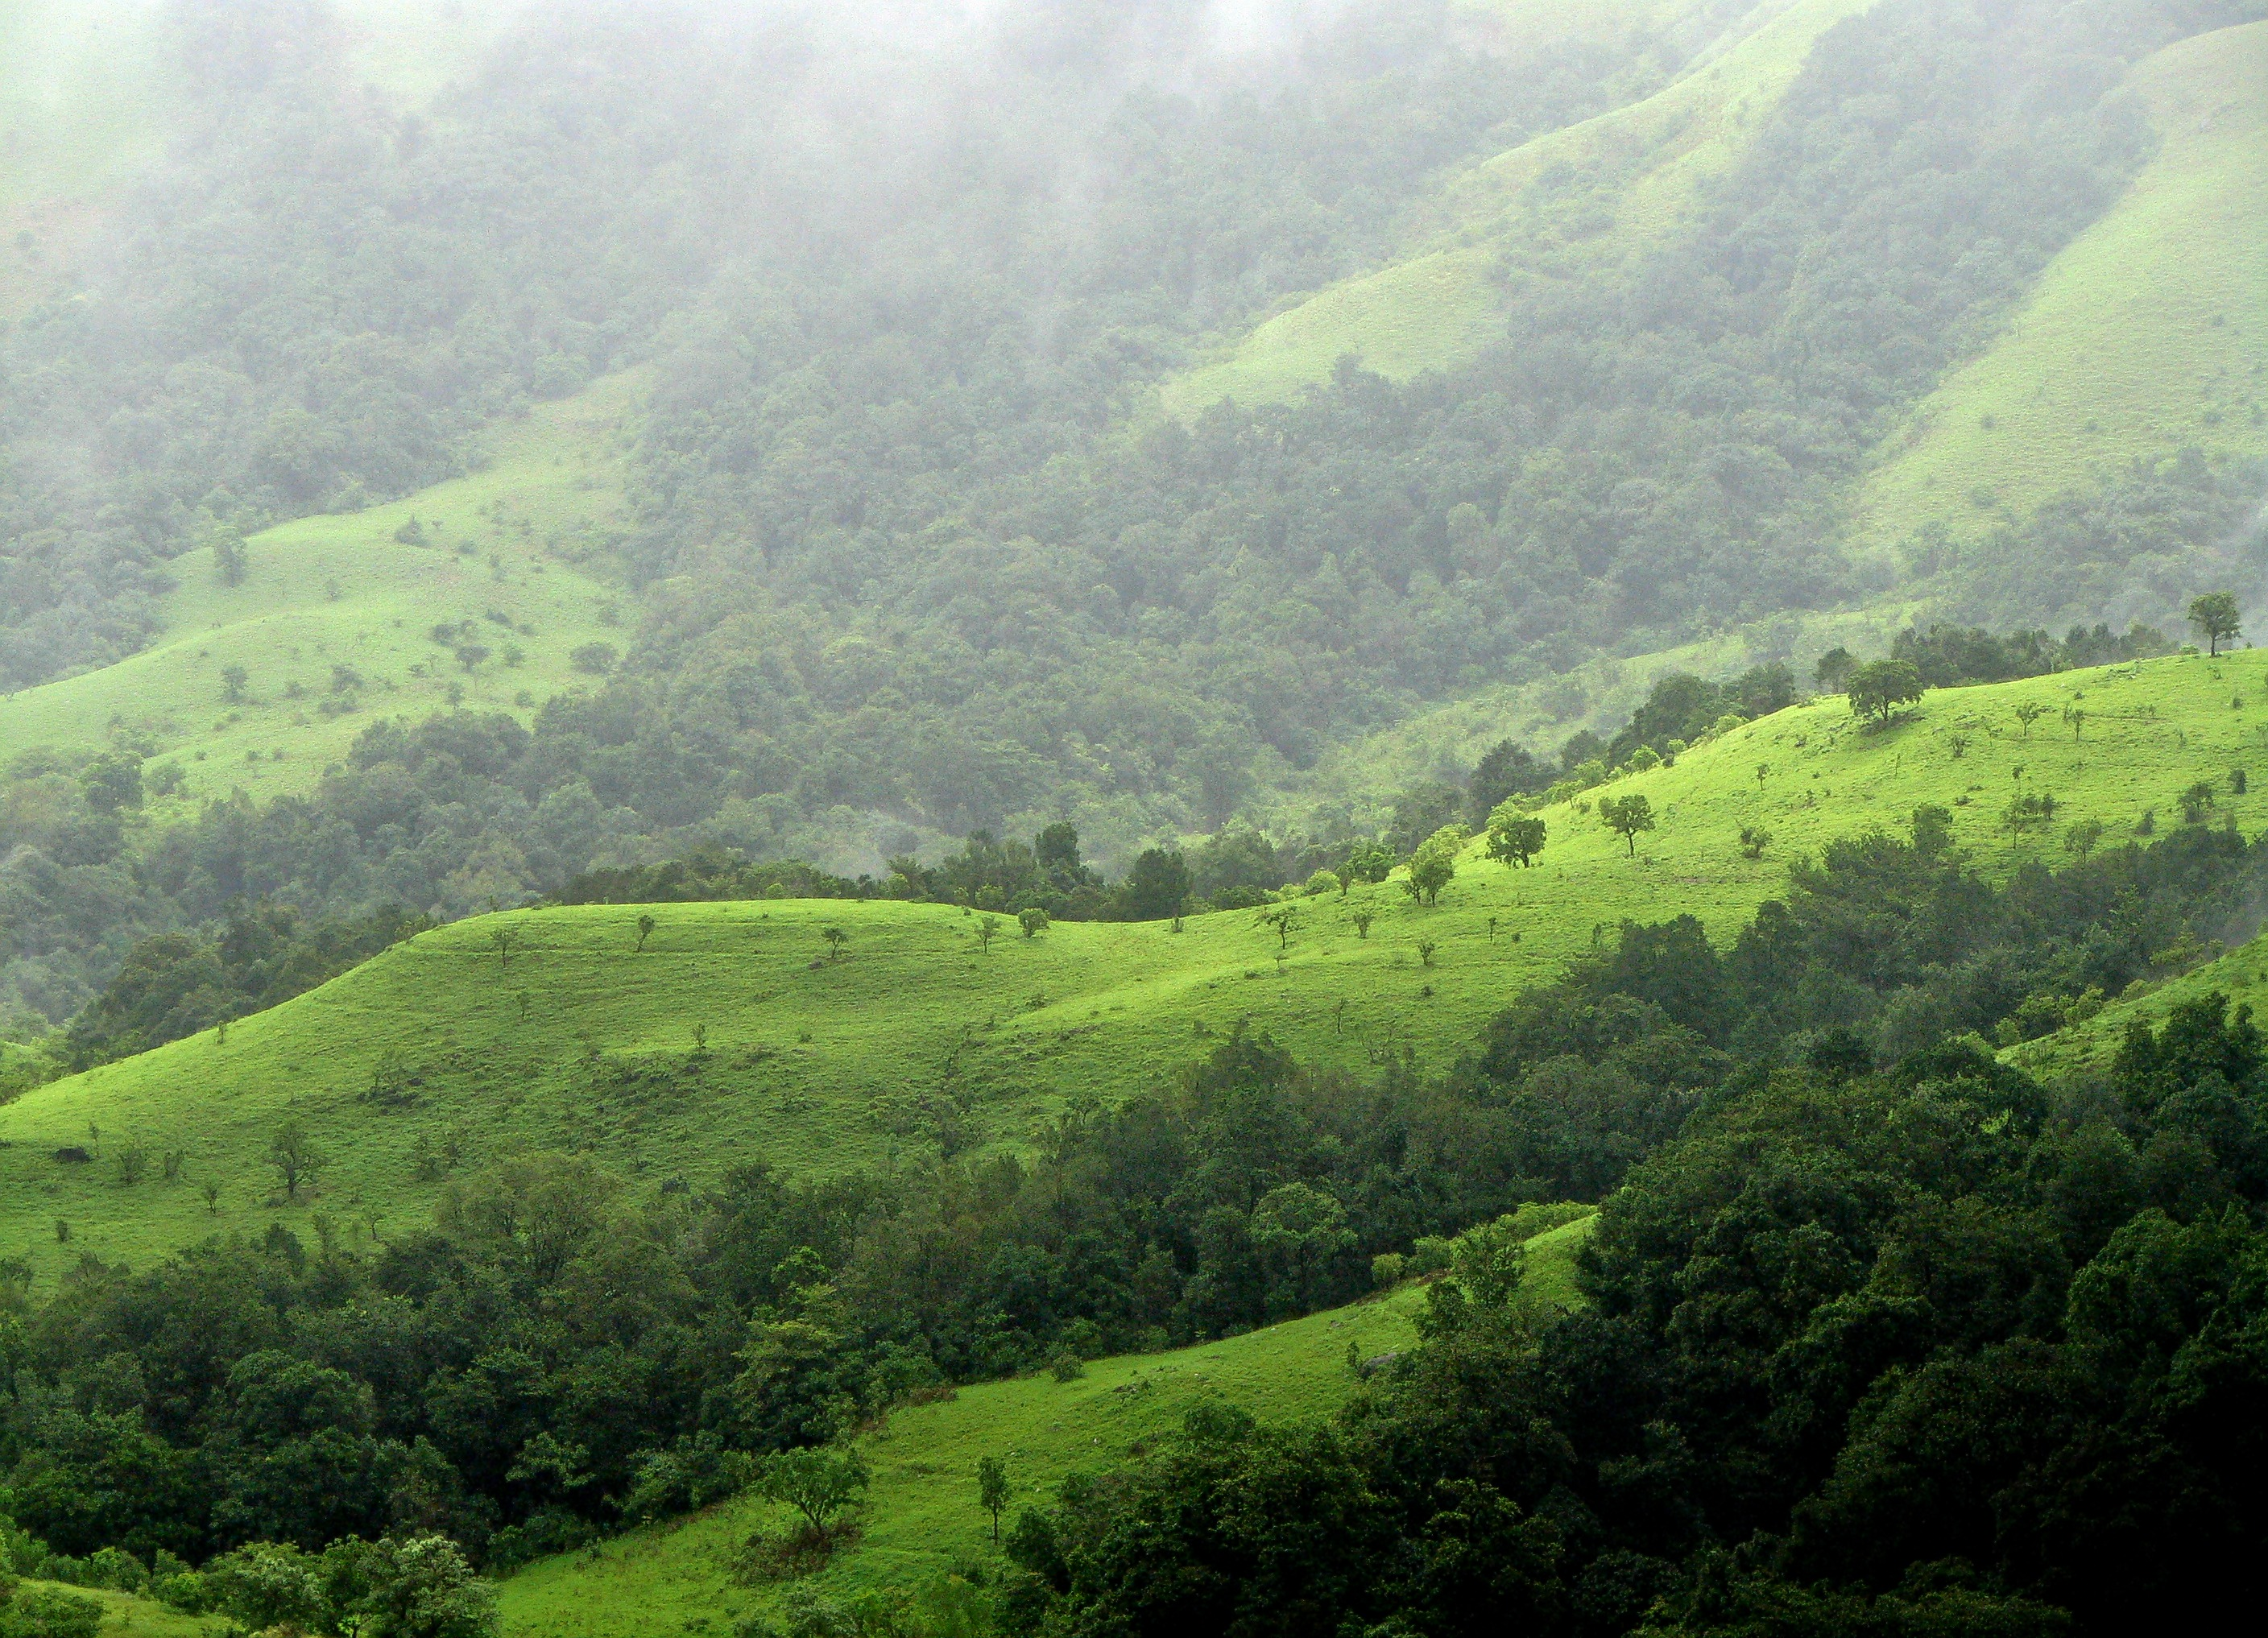 Shola_grasslands_and_forests_in_the_kudremukh_national_park__western_ghats__karnataka.jpg